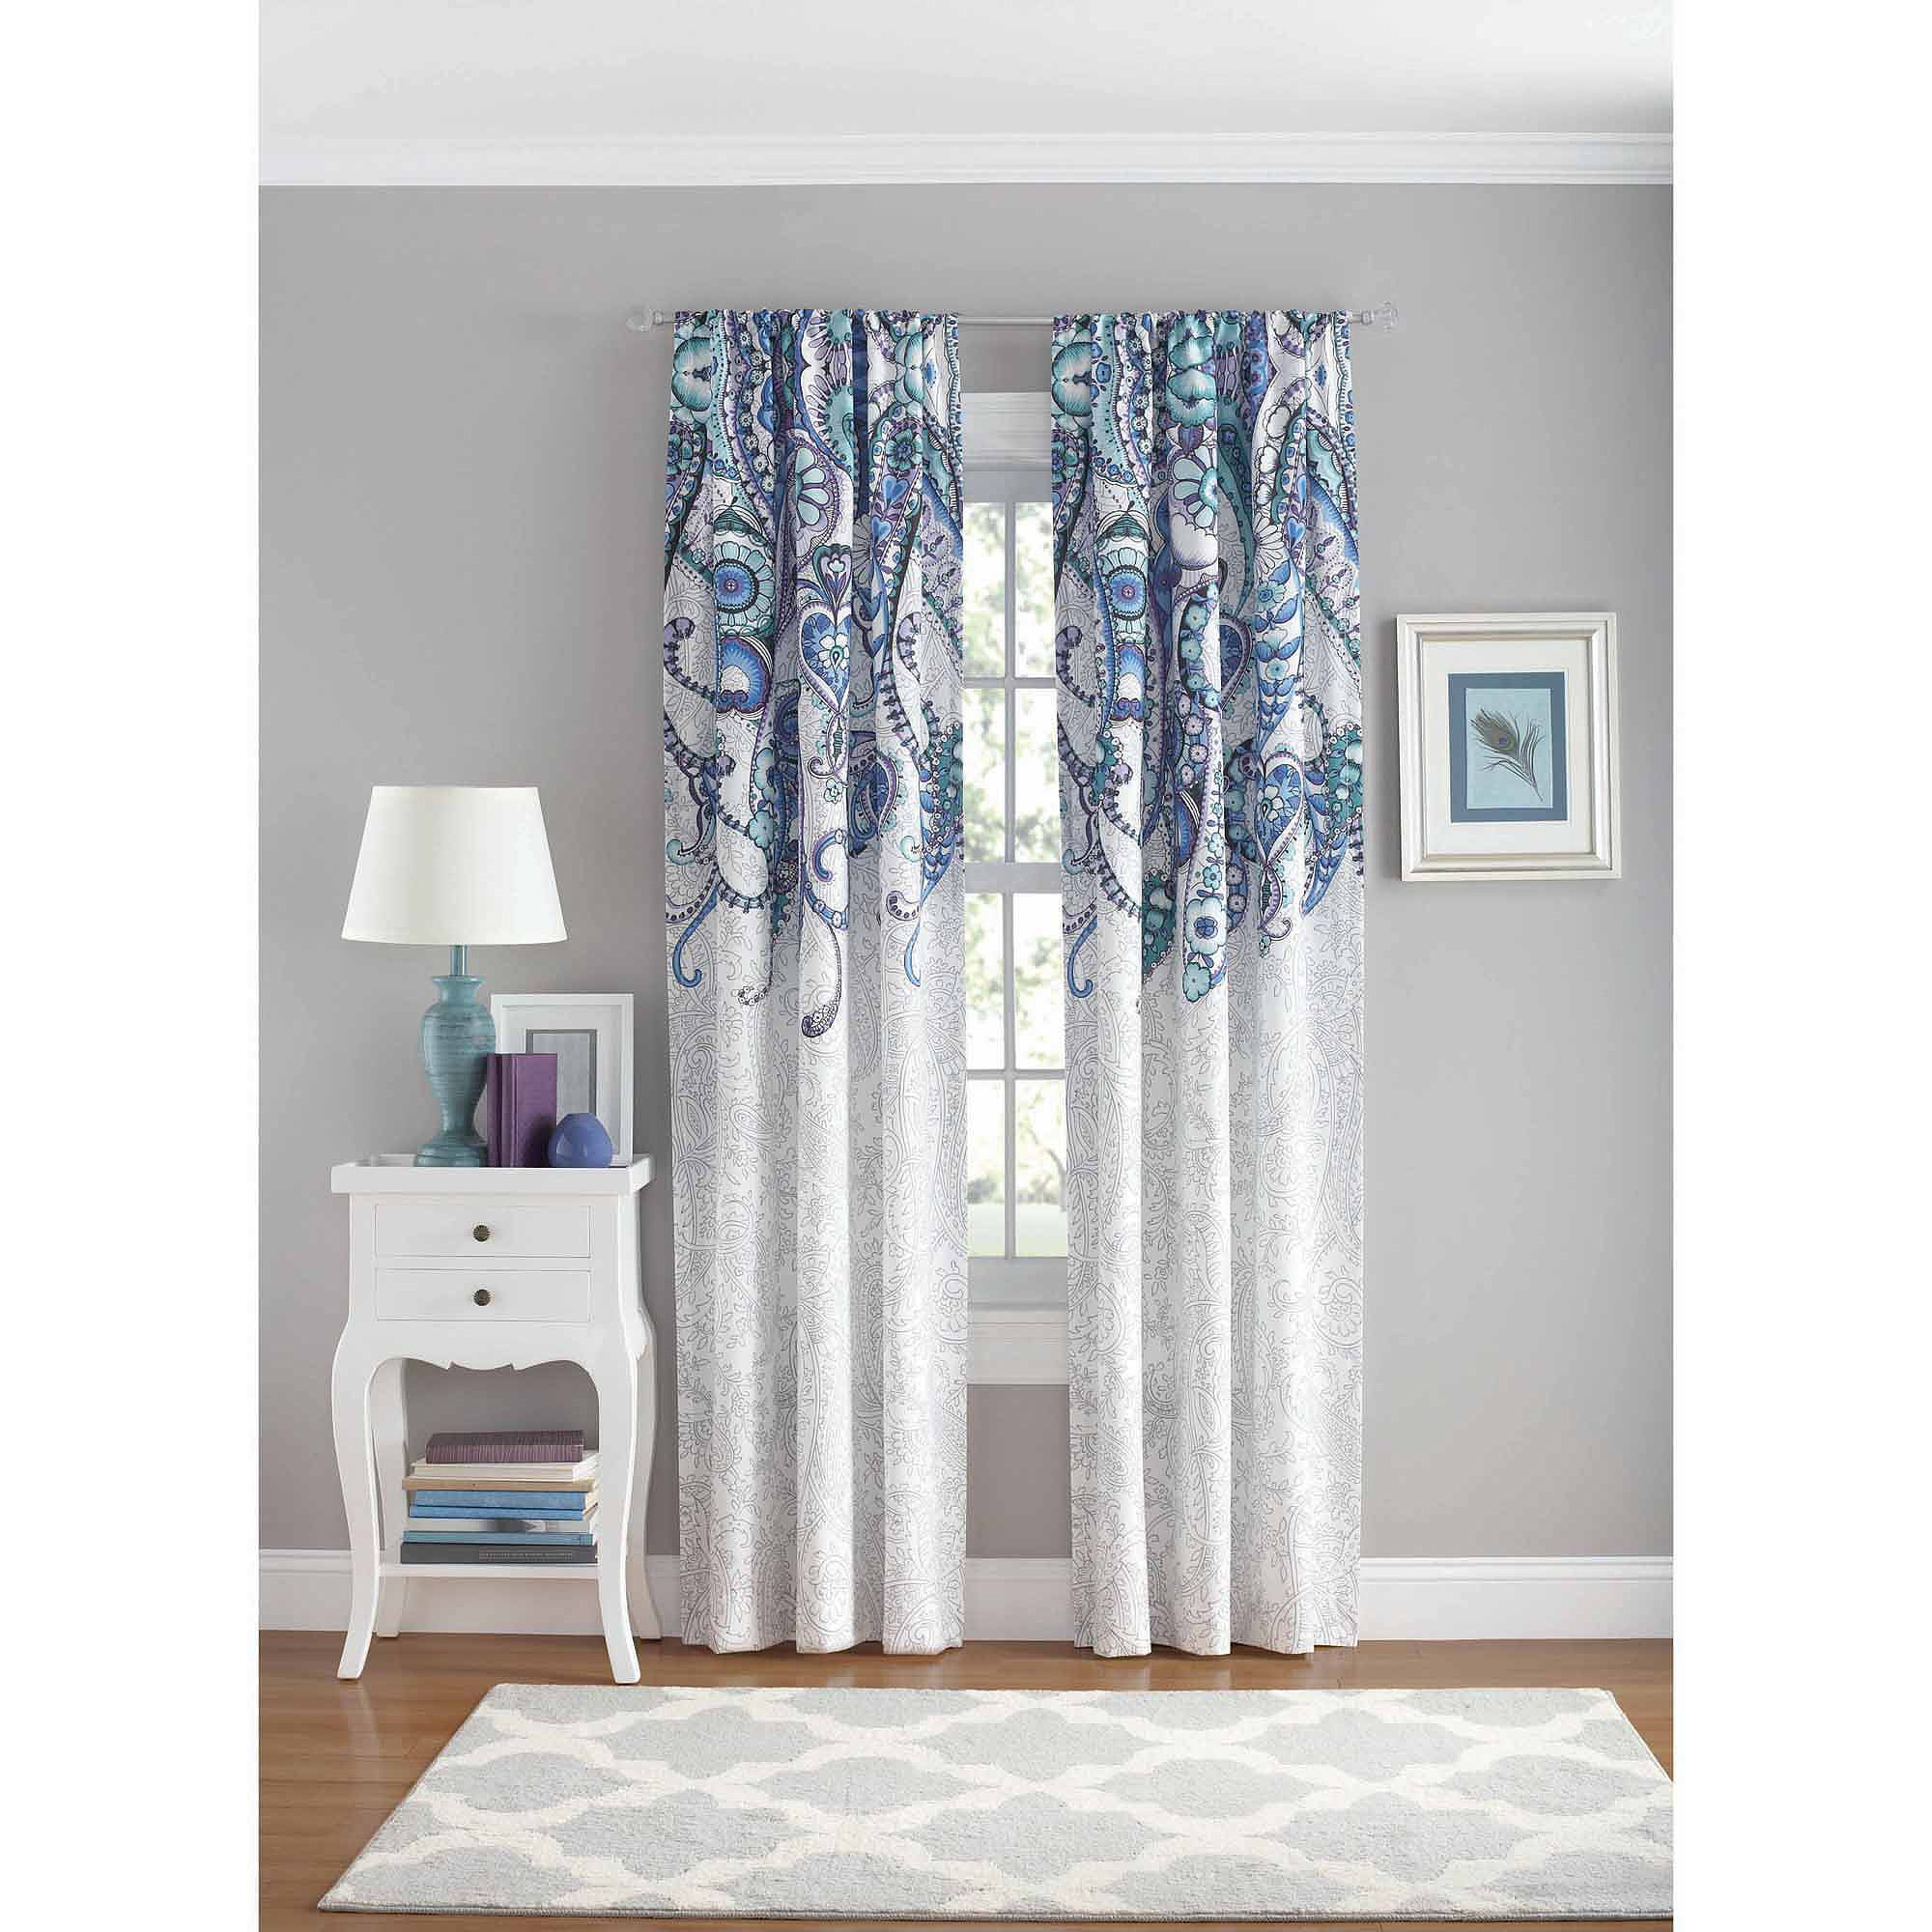 Walmart Curtains For Living Room New Your Zone Paisley Bedroom Curtain Panel  Walmart Decorating Inspiration